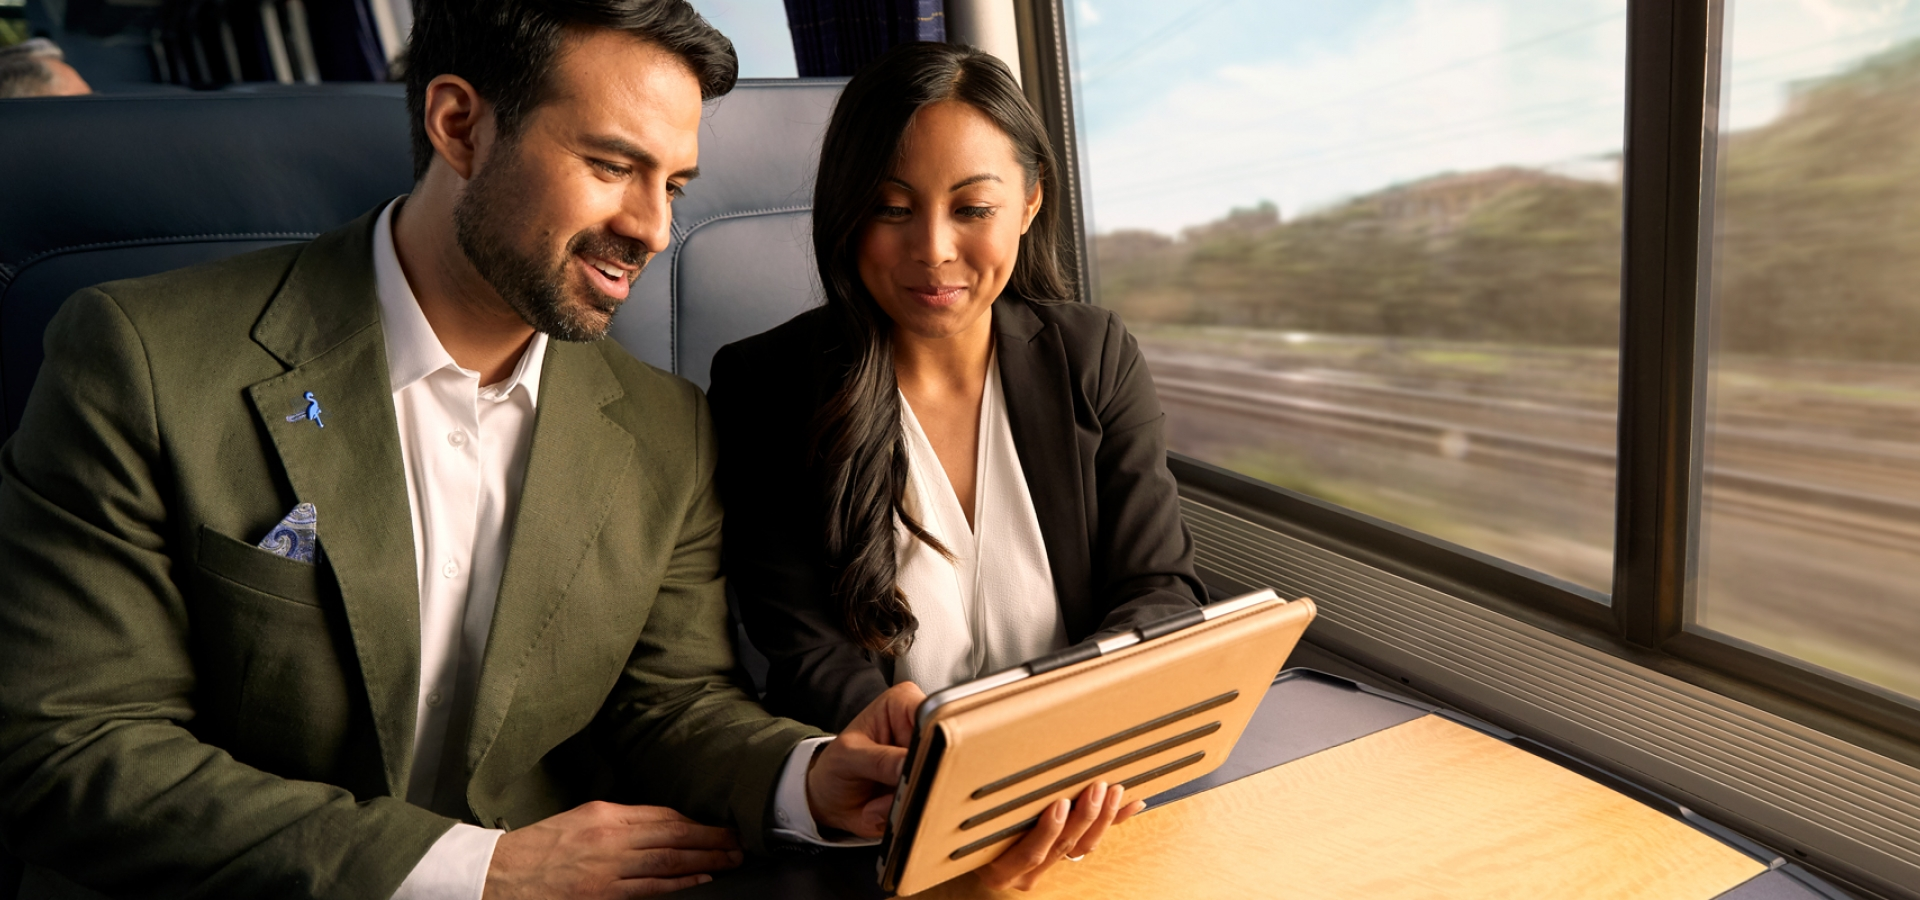 two business people on amtrak's acela train